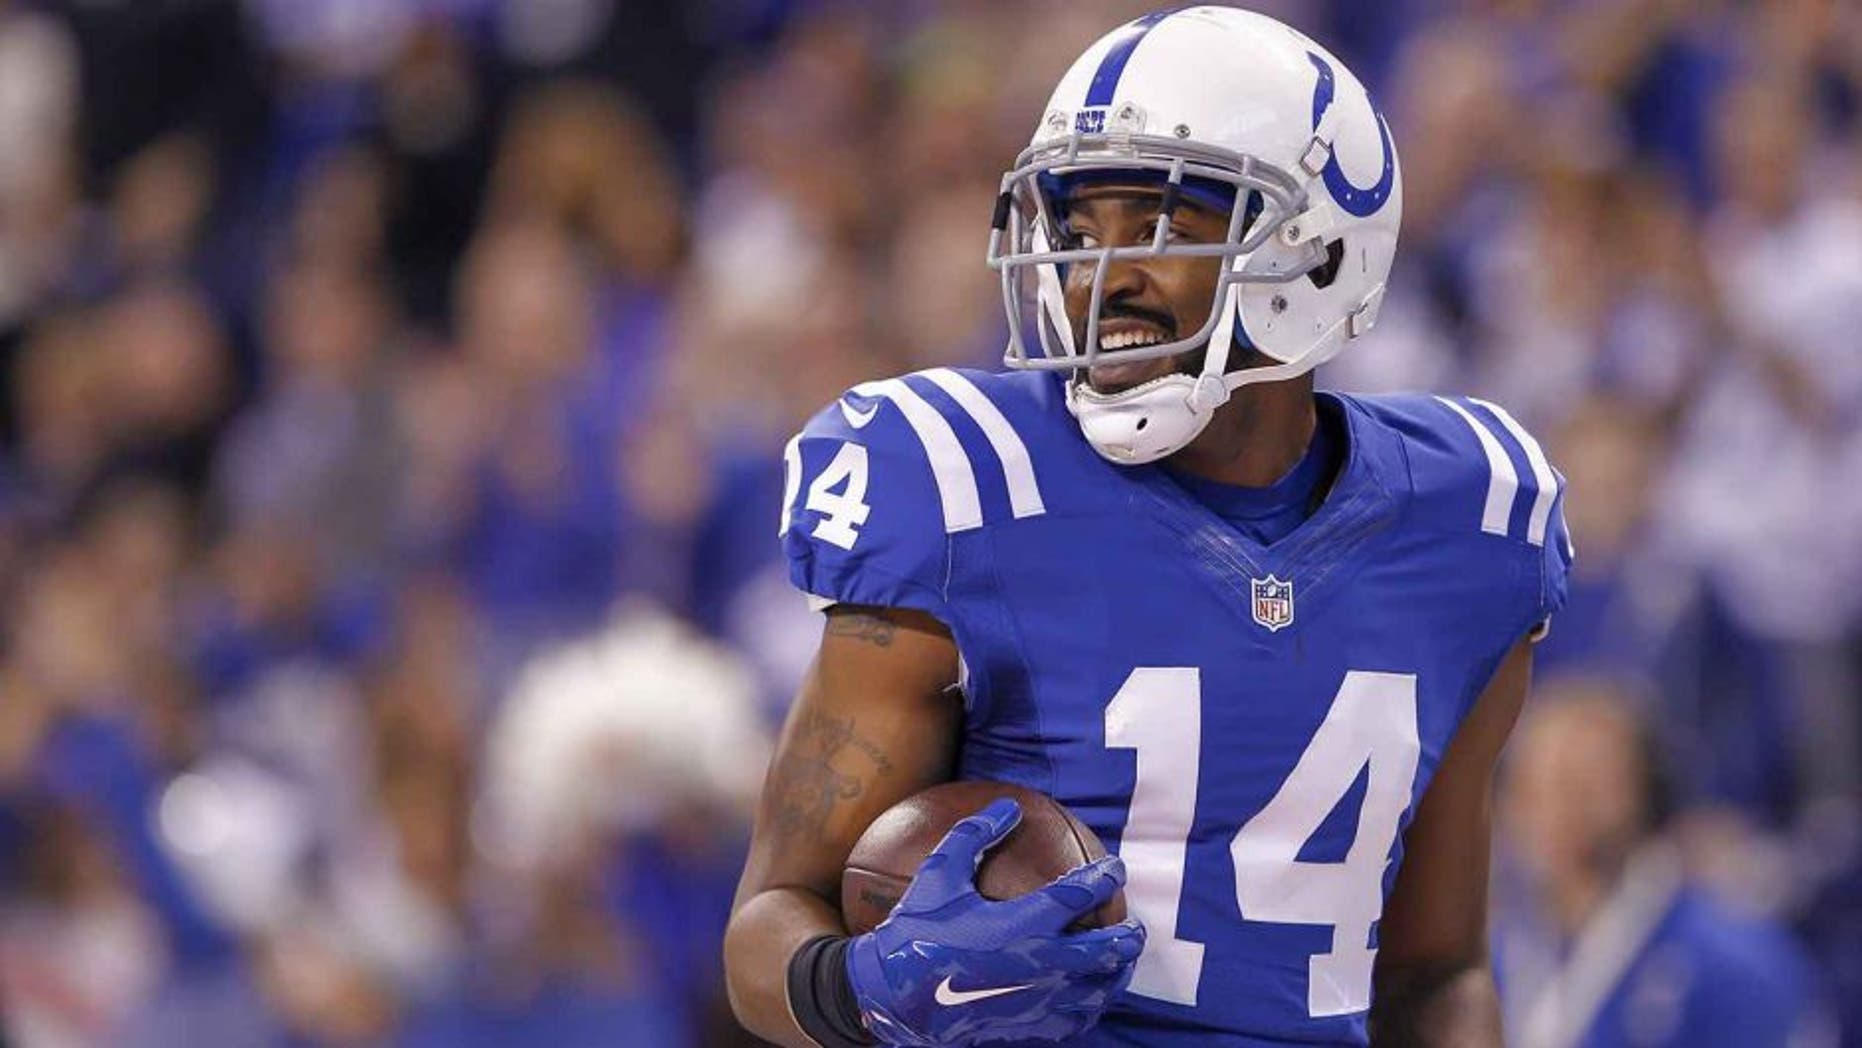 INDIANAPOLIS, IN - DECEMBER 14: Hakeem Nicks #14 of the Indianapolis Colts runs the ball against the Houston Texans at Lucas Oil Stadium on December 14, 2014 in Indianapolis, Indiana. (Photo by Michael Hickey/Getty Images)